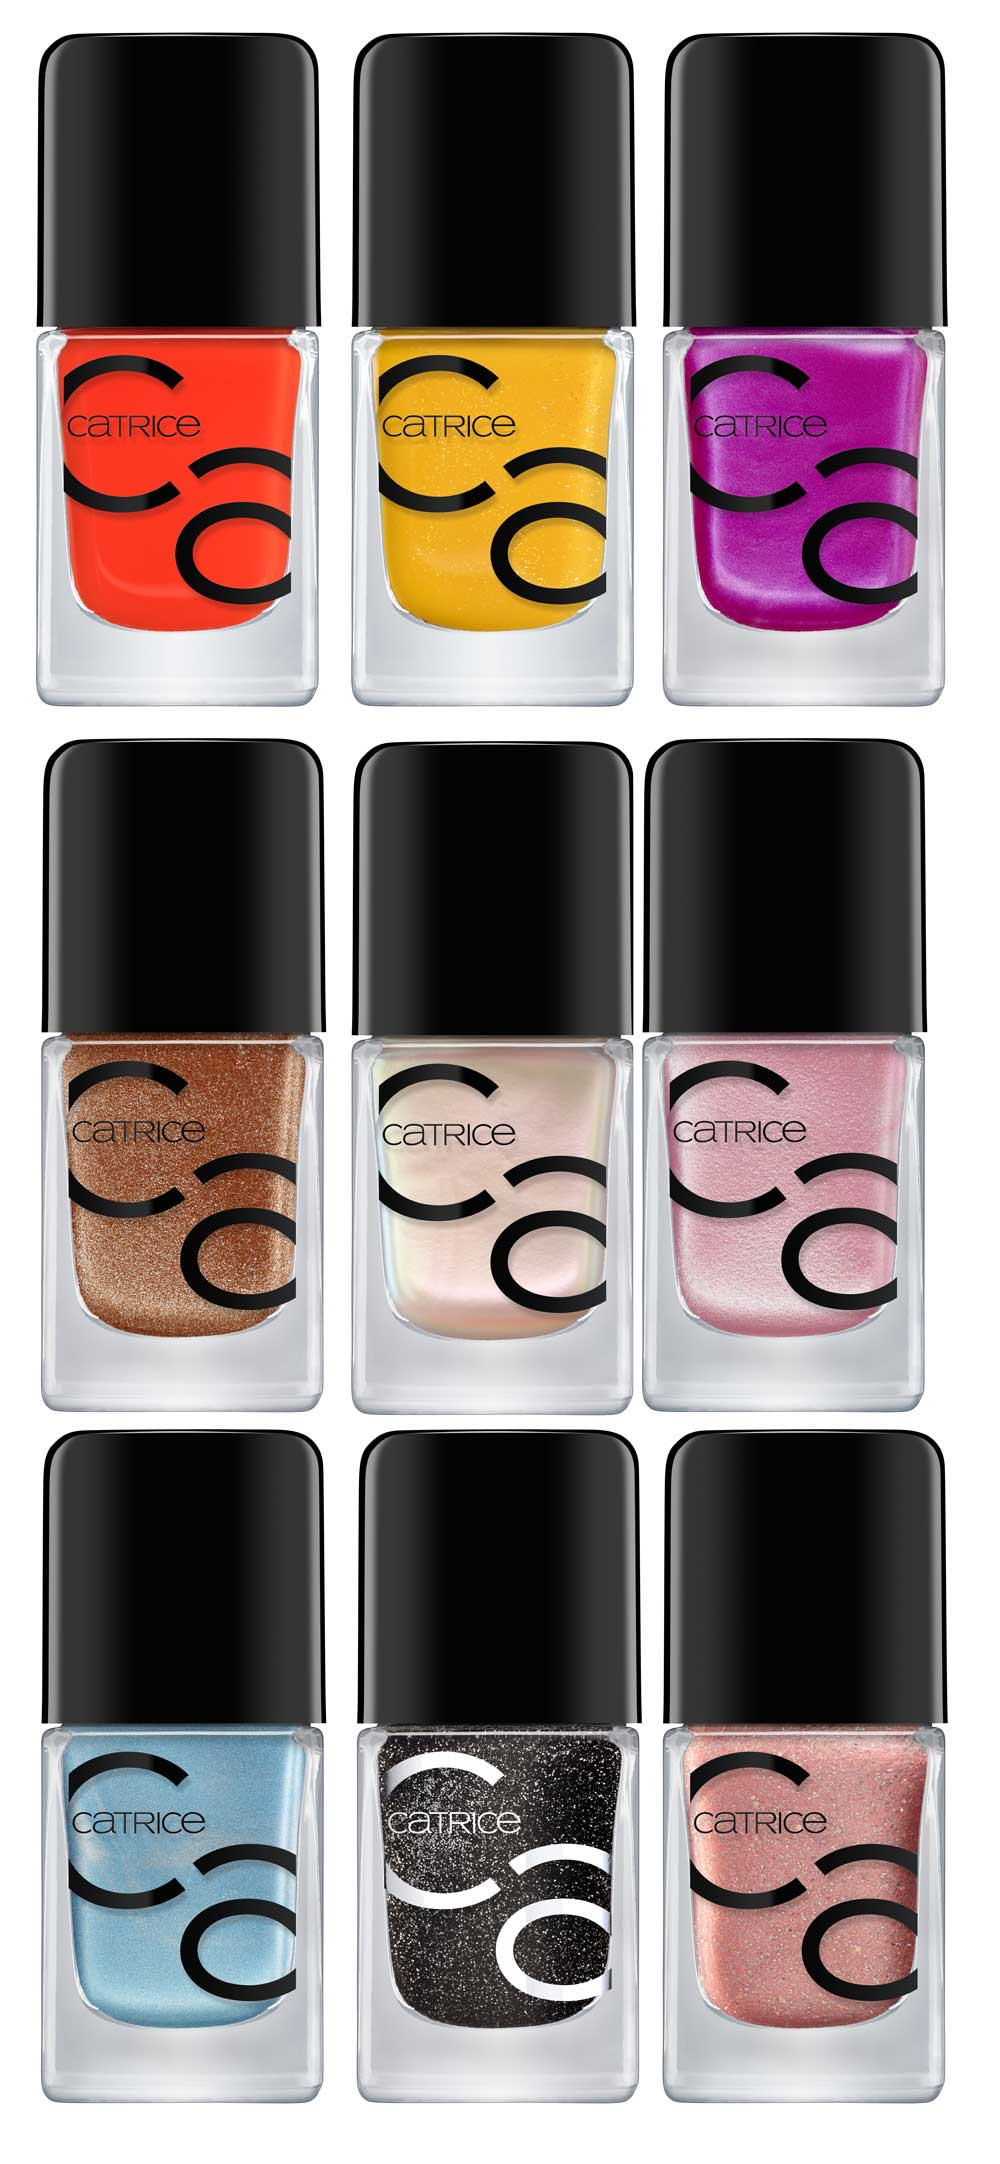 Catrice nail polish for colored nails